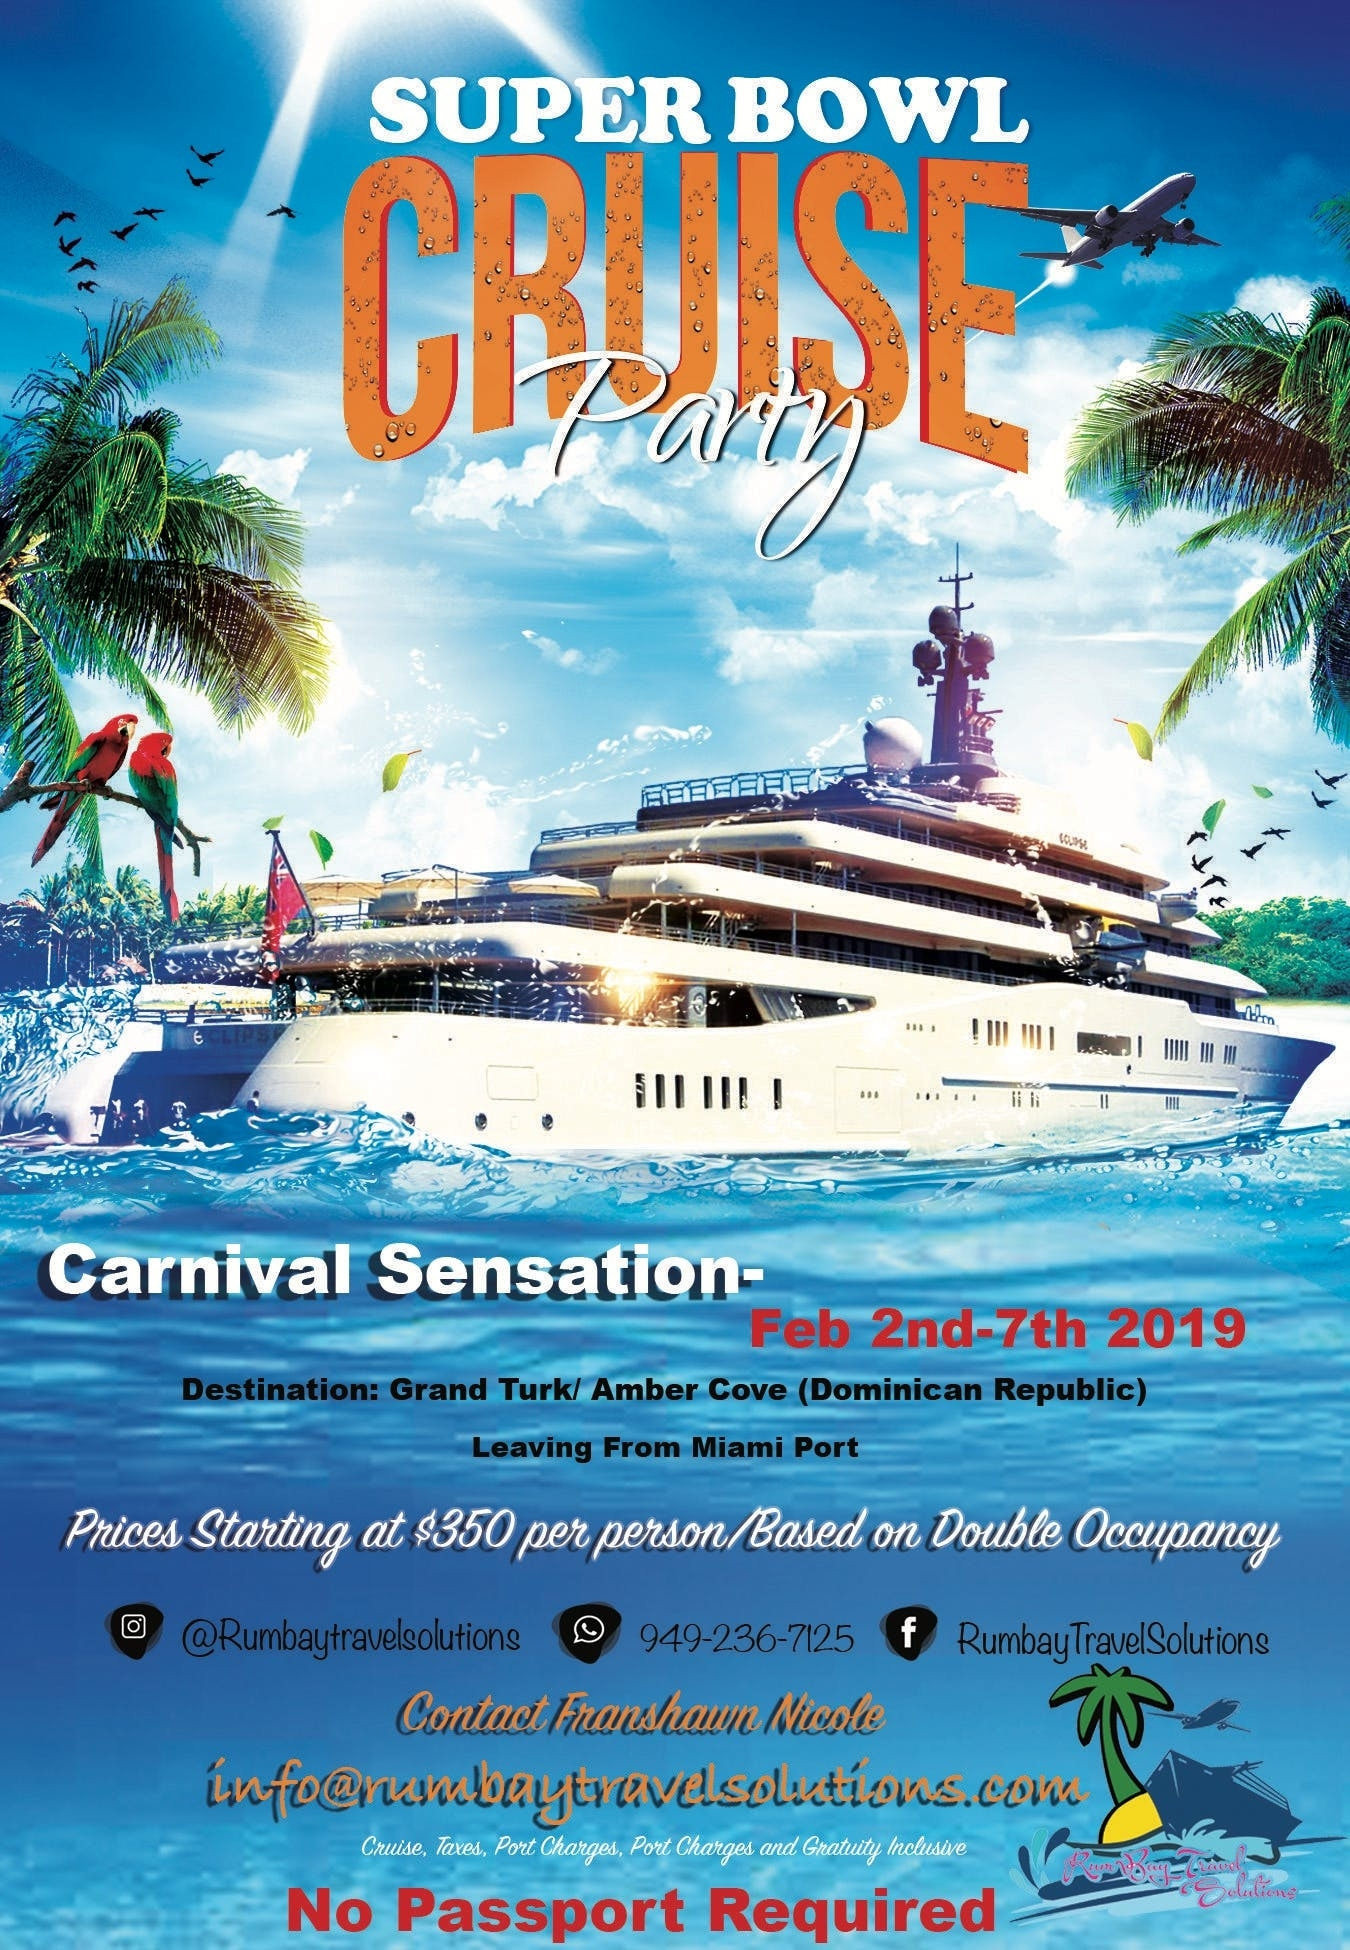 Superbowl Cruise 2019 Amber Cove, Dominican Republic/grand regarding Miami Super Bowl Cruise